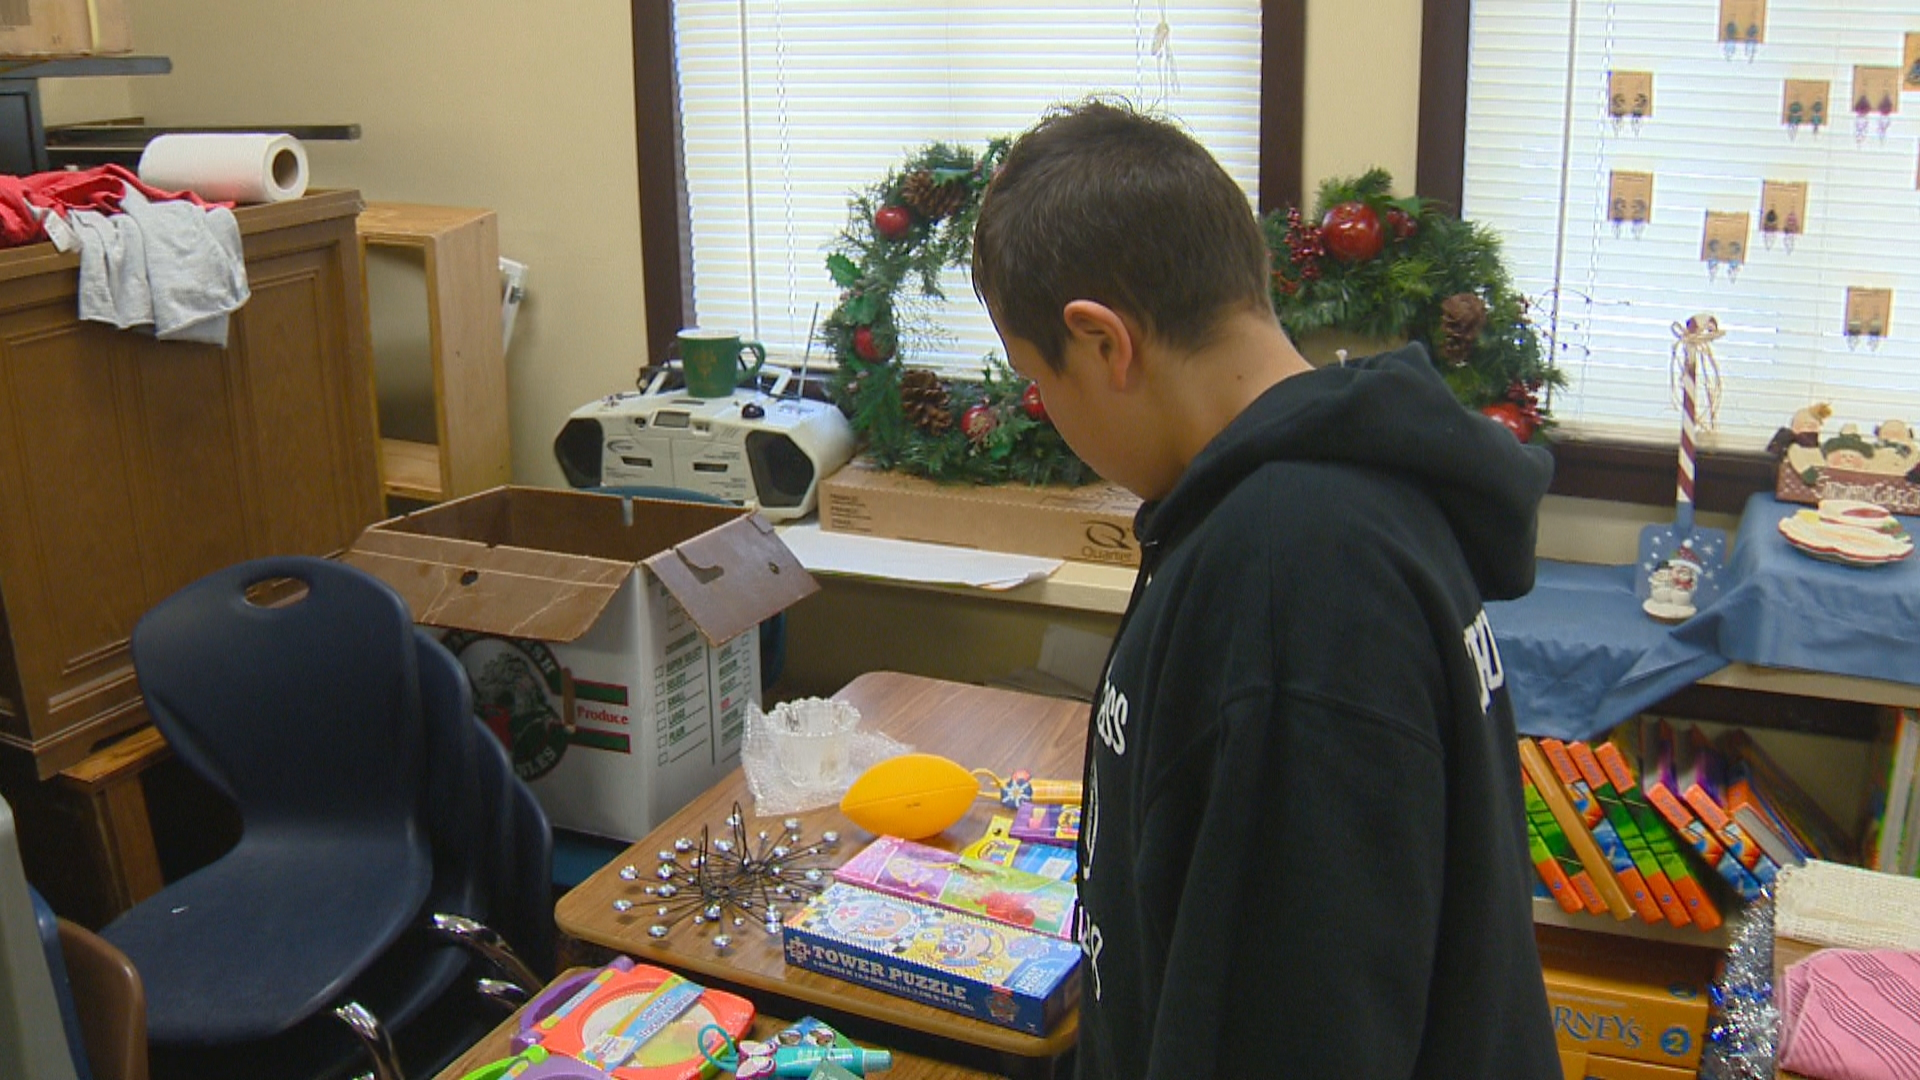 Tate'  Zhuckkahosee searching for a Chirstmas gift for his mom. (WLUK image)